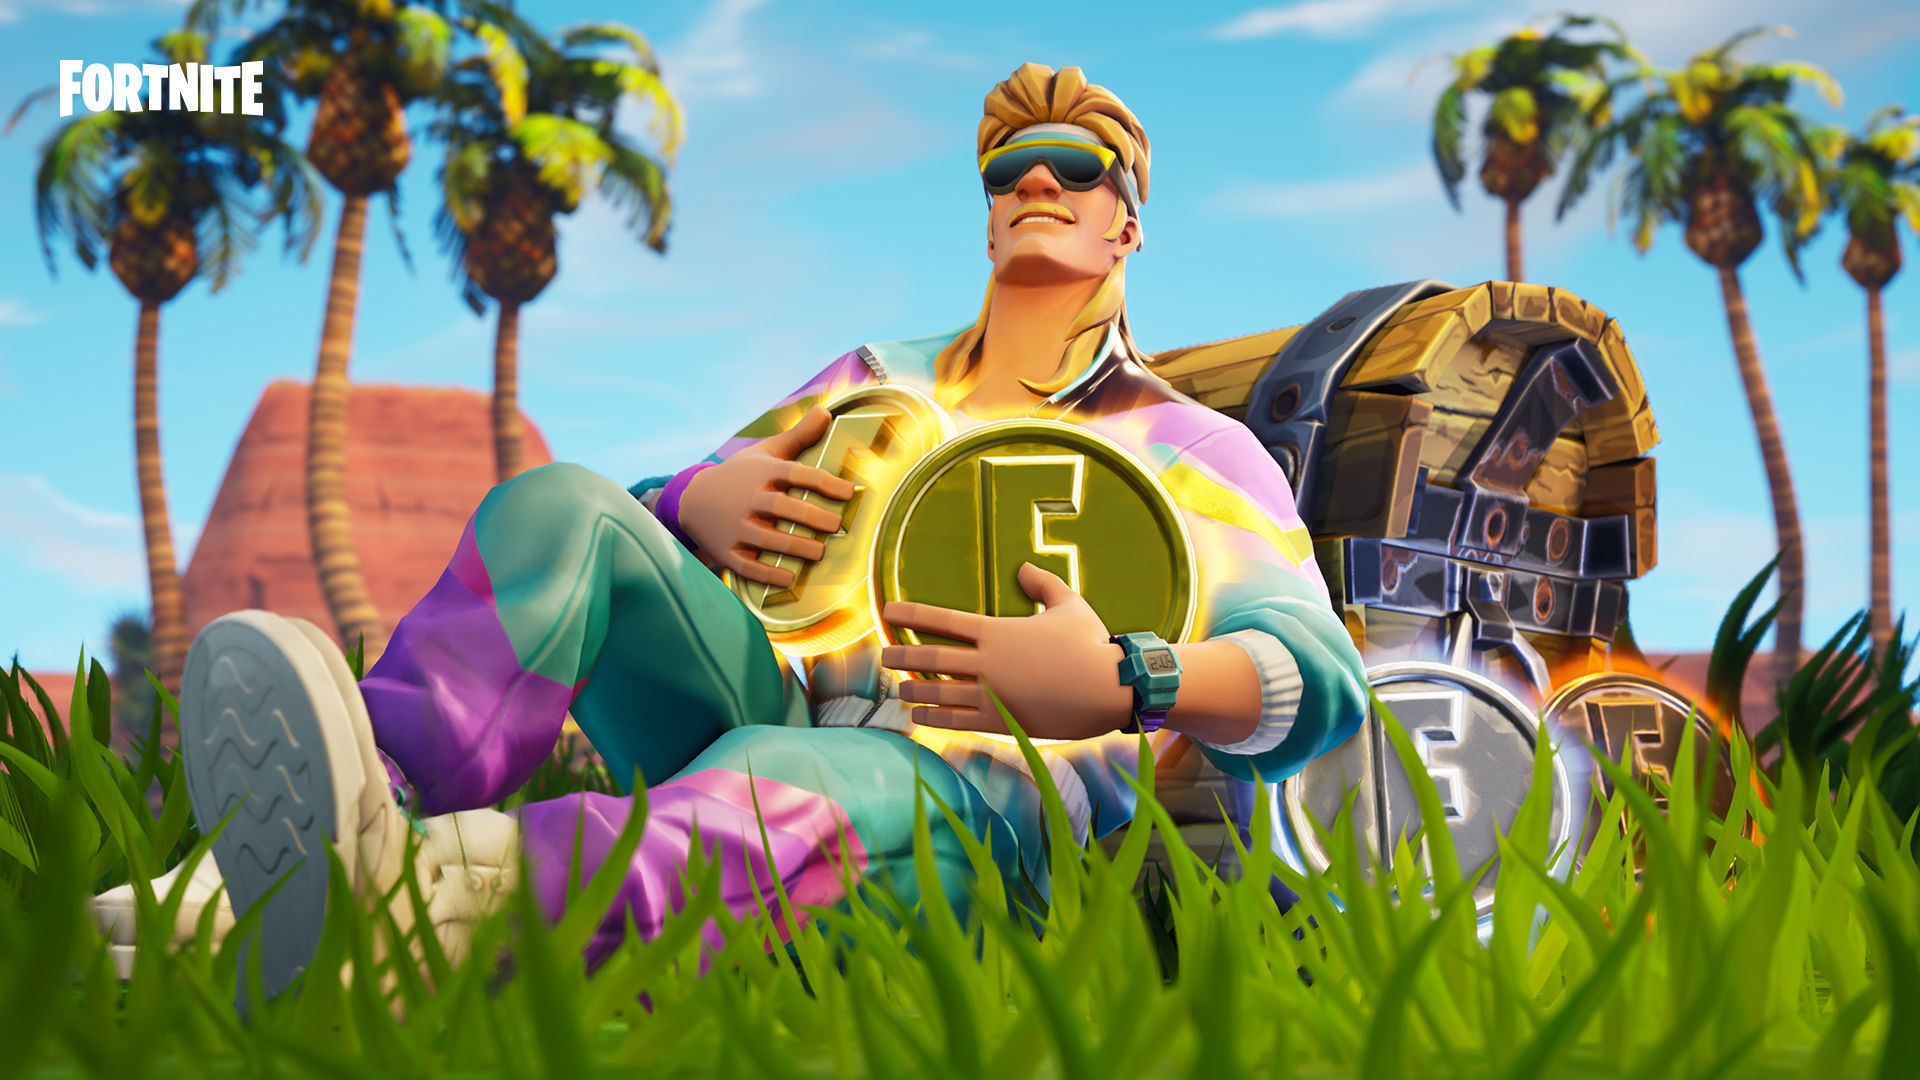 Fortnite patch v9 21 adds a new Grenade Launcher and the new Horde